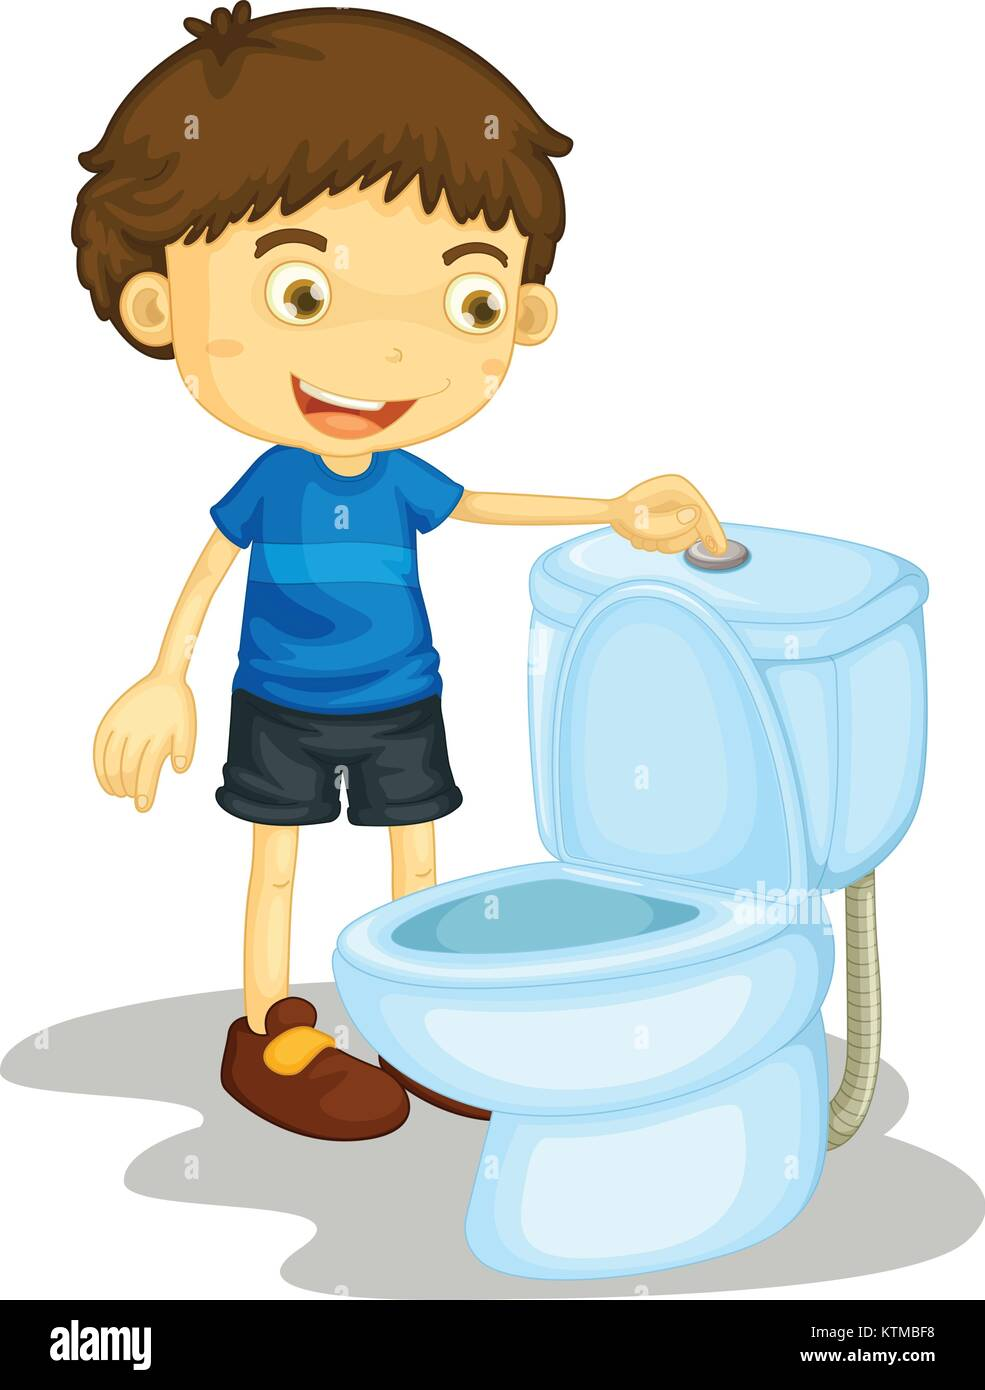 boy child flushing toilet stock photos   boy child clipart surfing pictures surfing clipart png